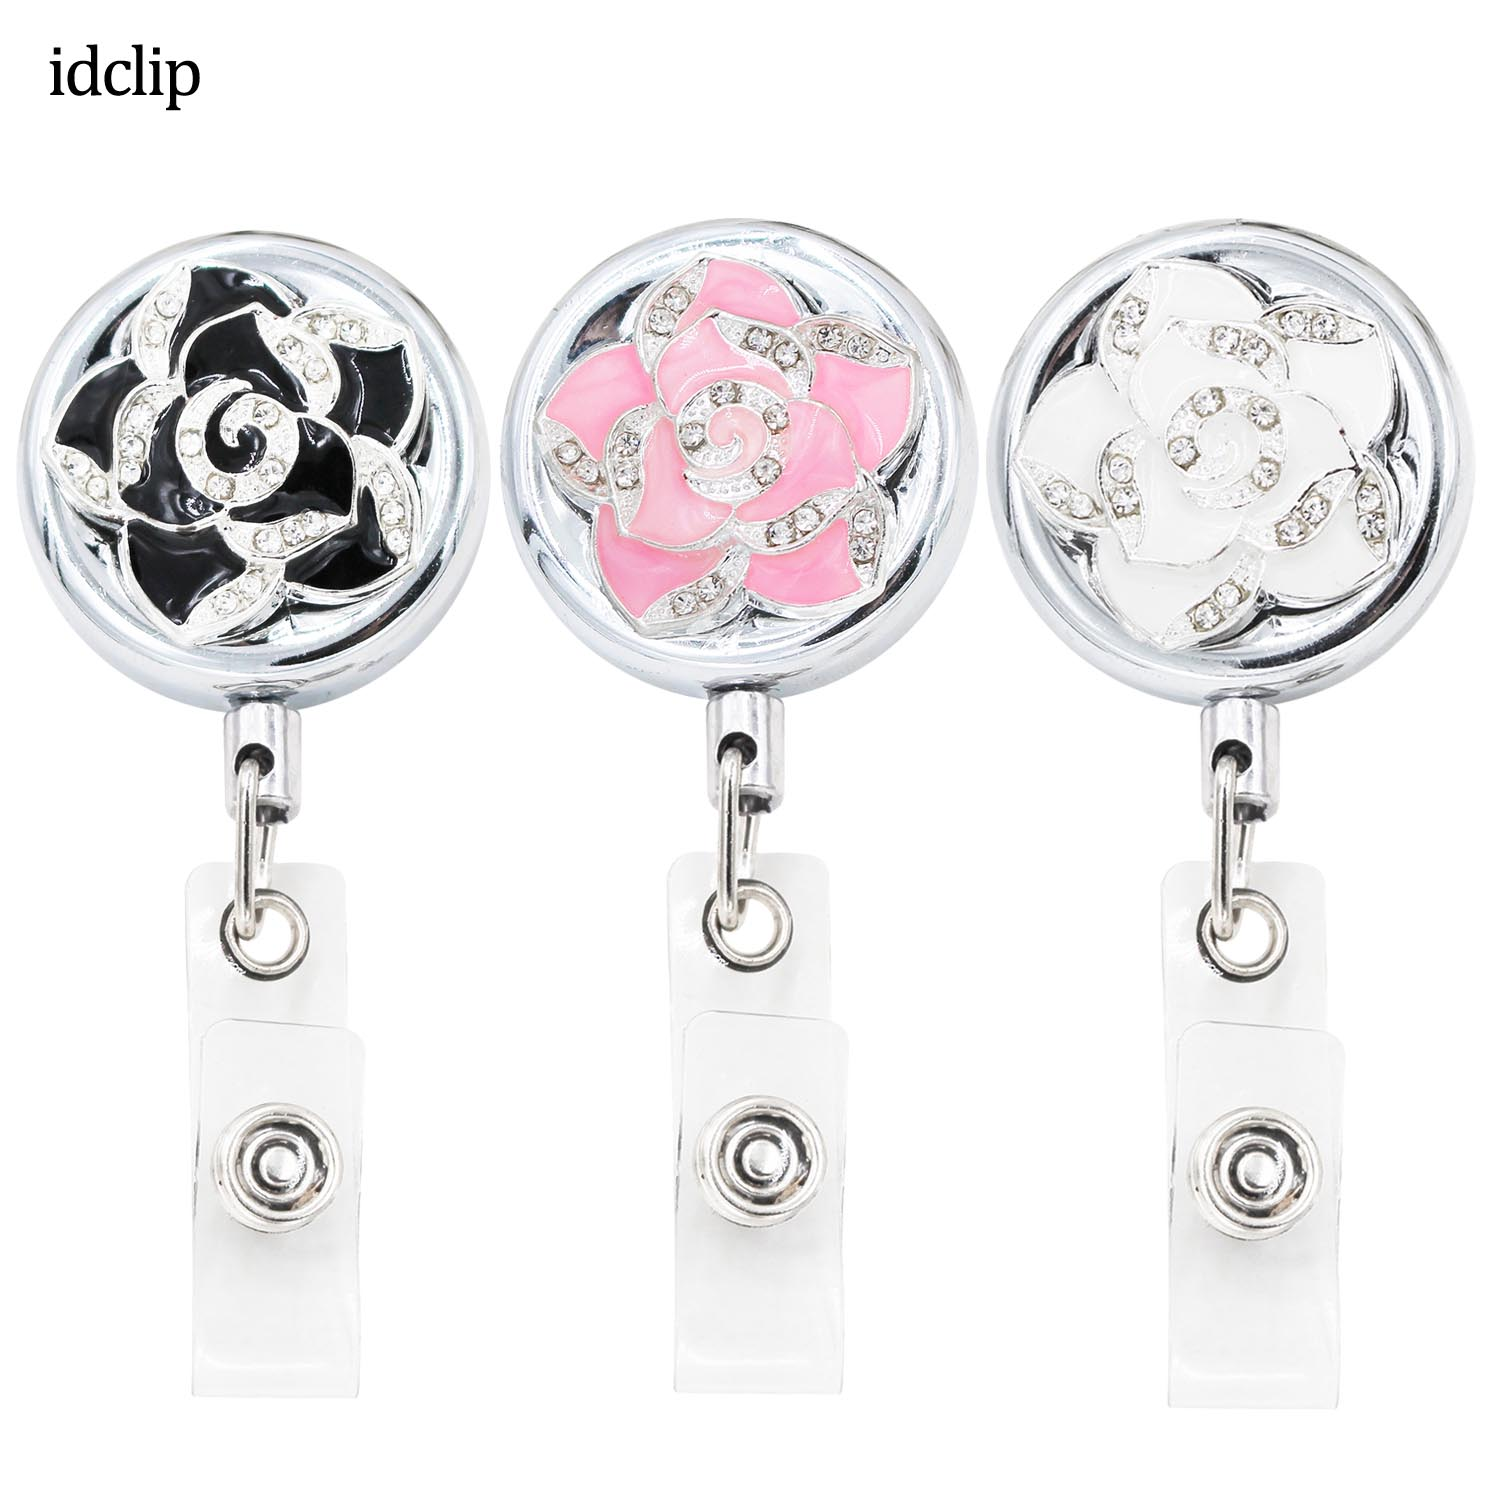 idclip 3 2cm Camellia Flower ID Retractable Badge Holder Belt Clips Metal Badge Reel Heavy Duty Steel Wire Cord in Badge Holder Accessories from Office School Supplies